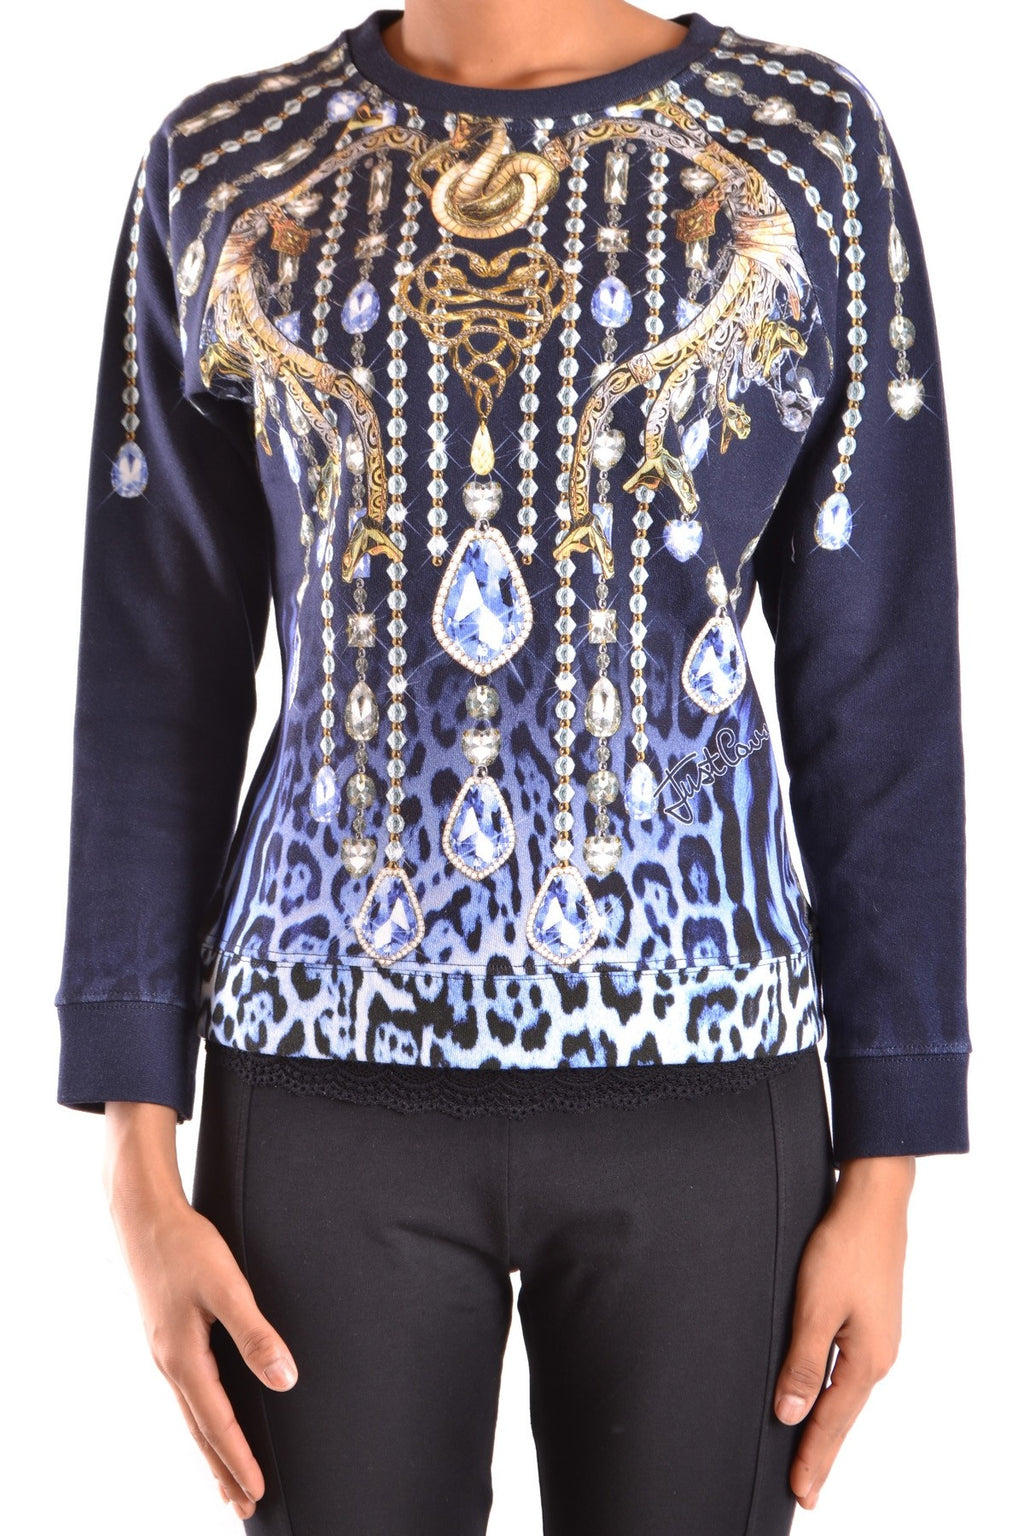 Just Cavalli Woman Sweatshirts